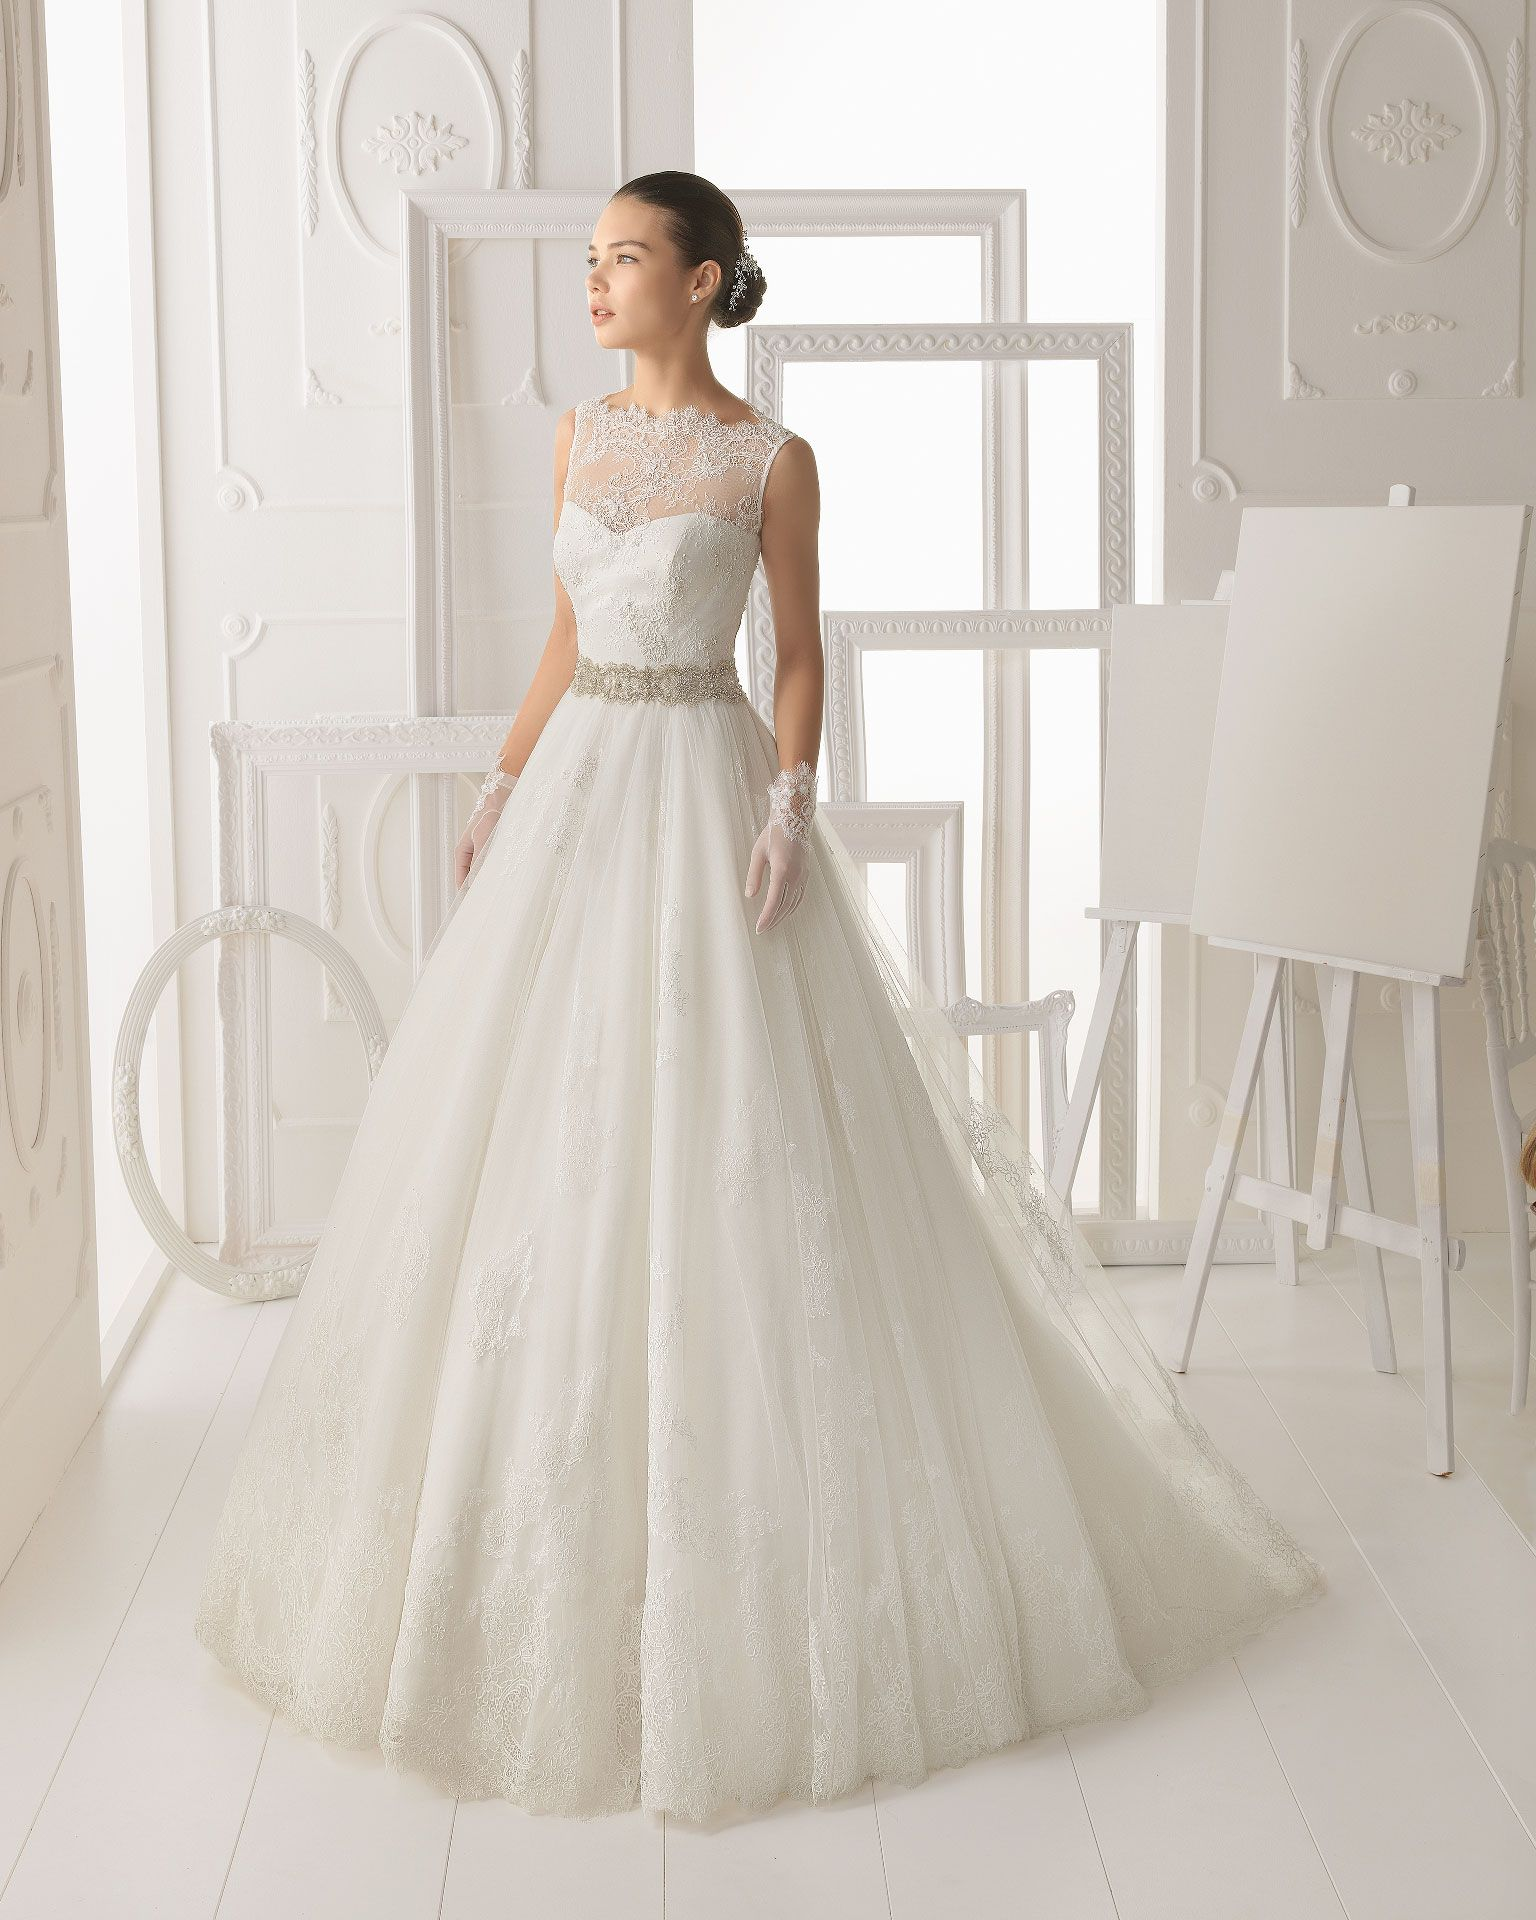 17 Best images about Wedding Dresses on Pinterest | Spring, Beaded ...